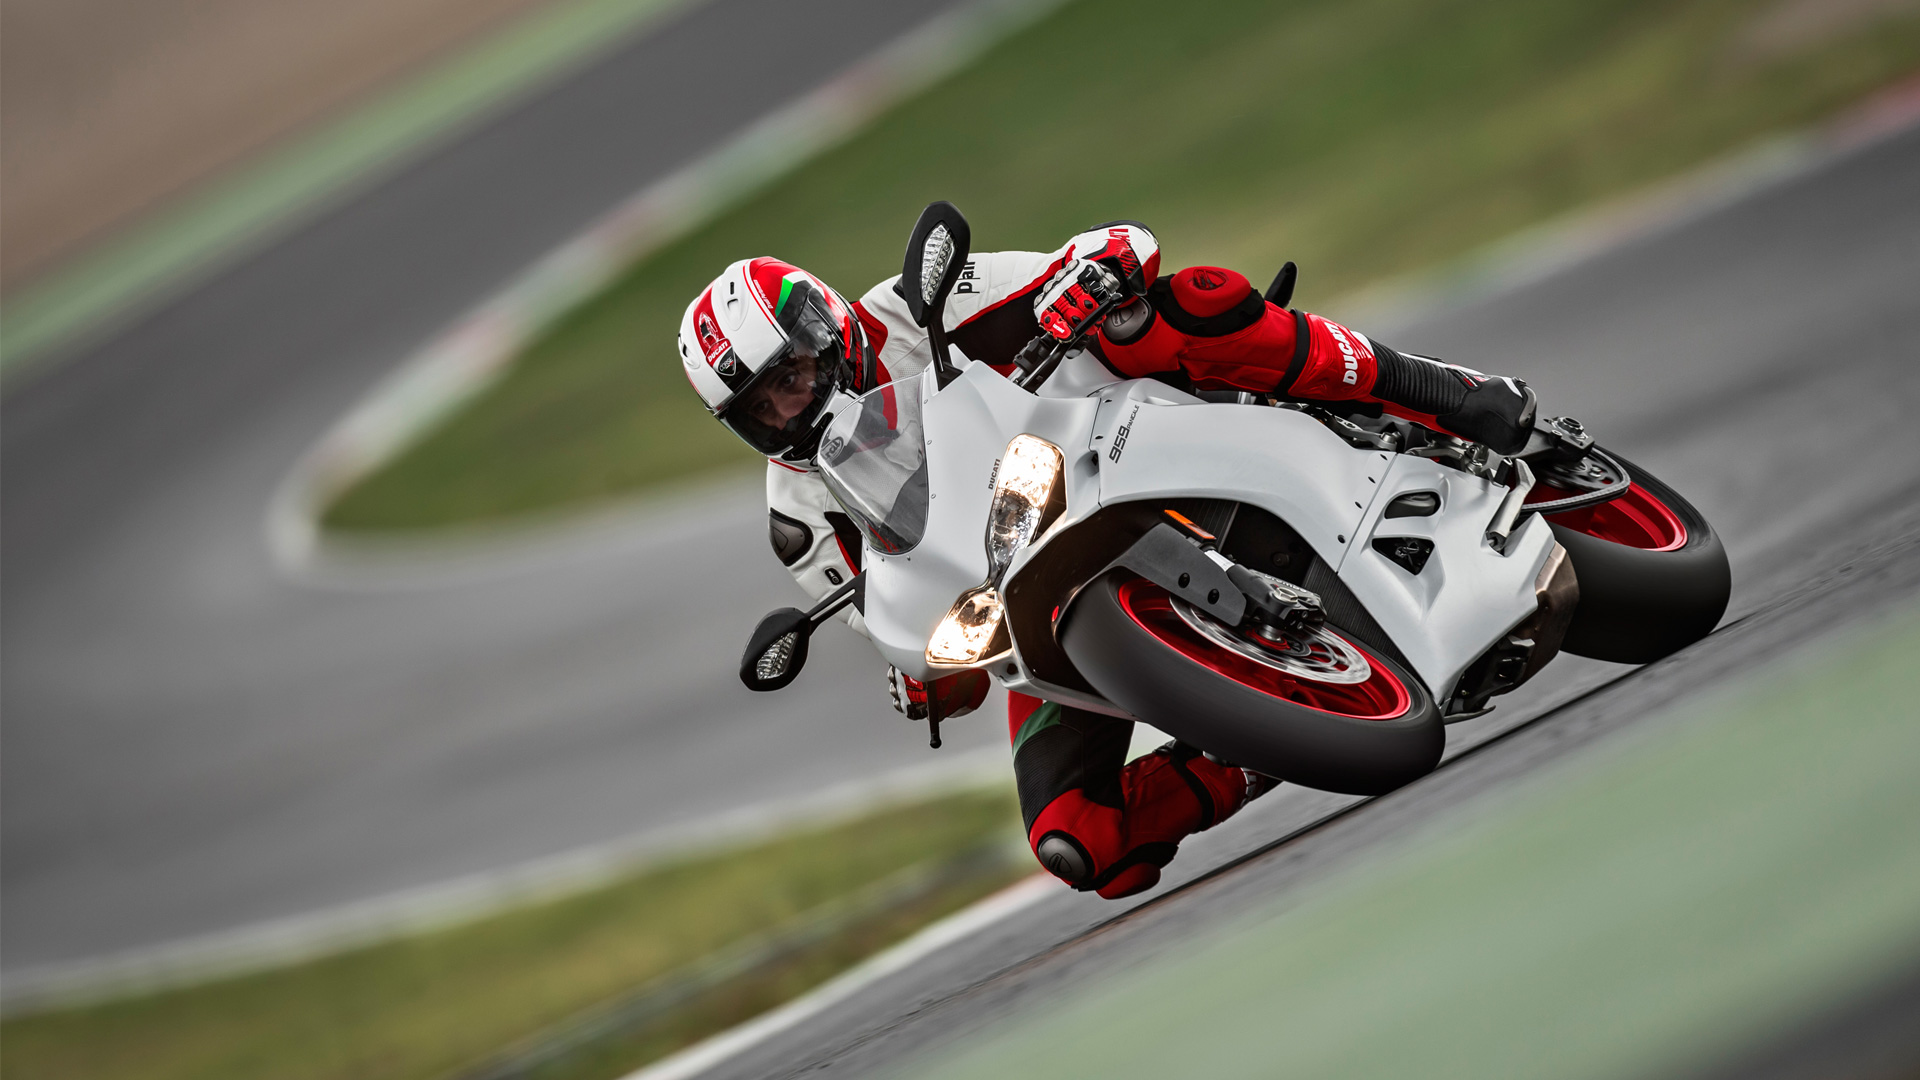 Panigale 959 Panigale Corse